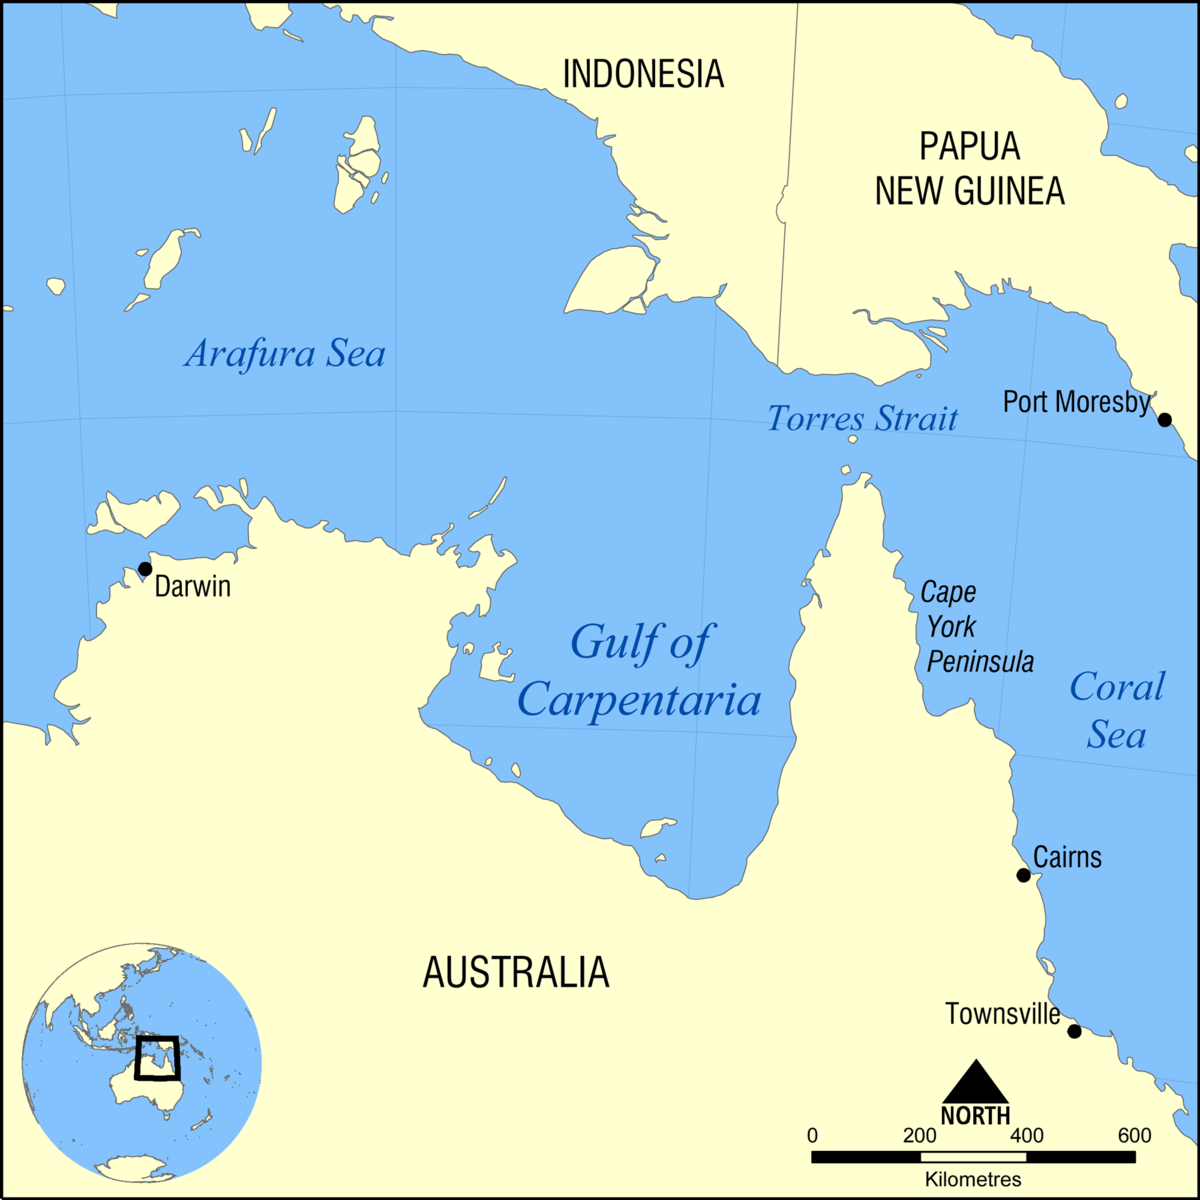 Gulf of Carpentaria - Wikipedia